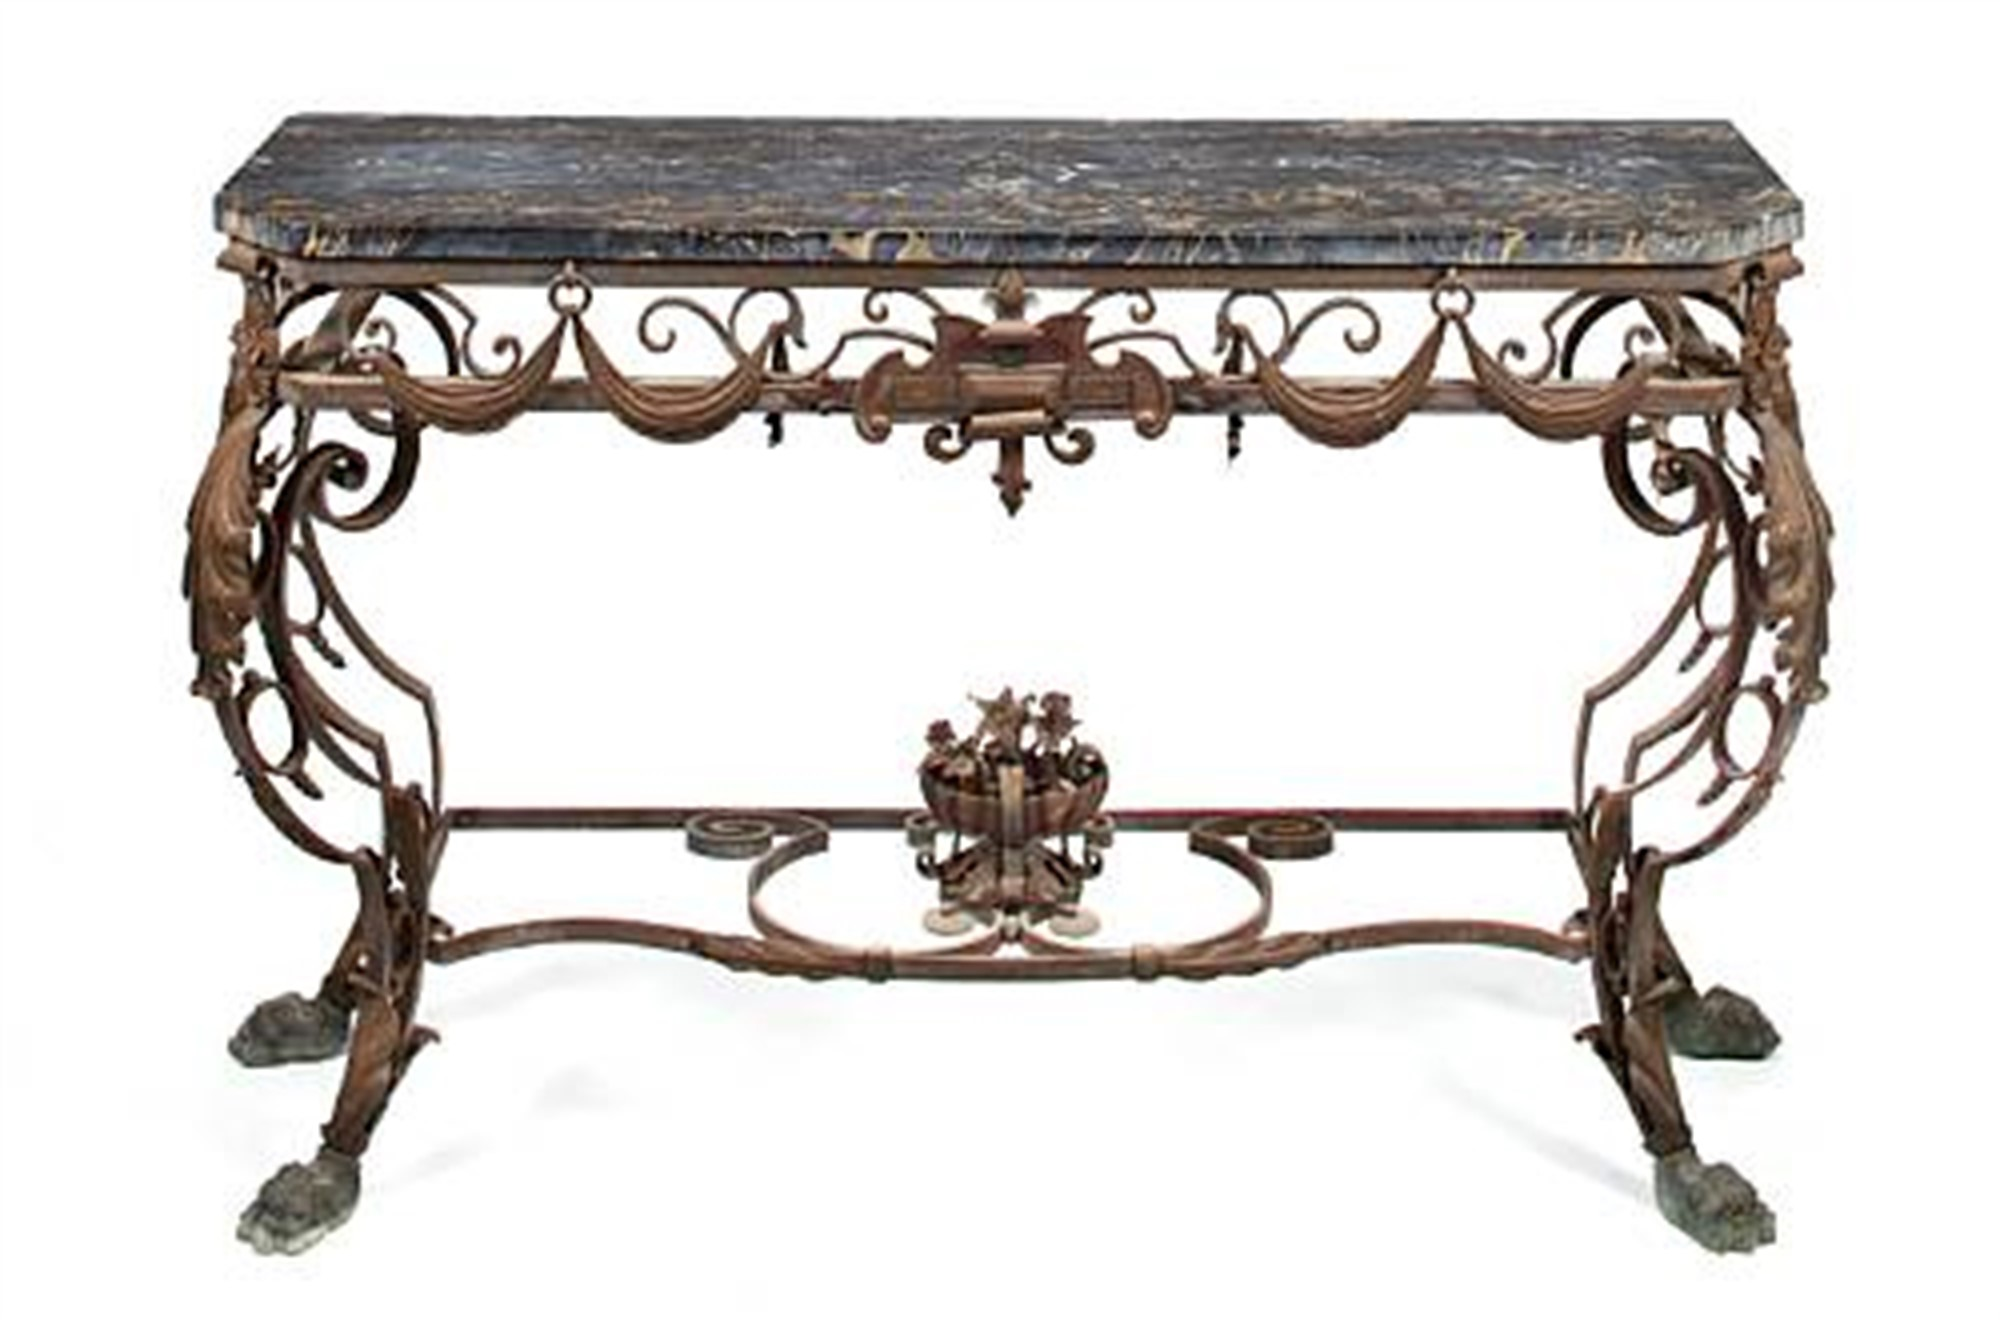 BAROQUE STYLE WROUGHT IRON AND PORTOR MARBLE CONSOLE TABLE